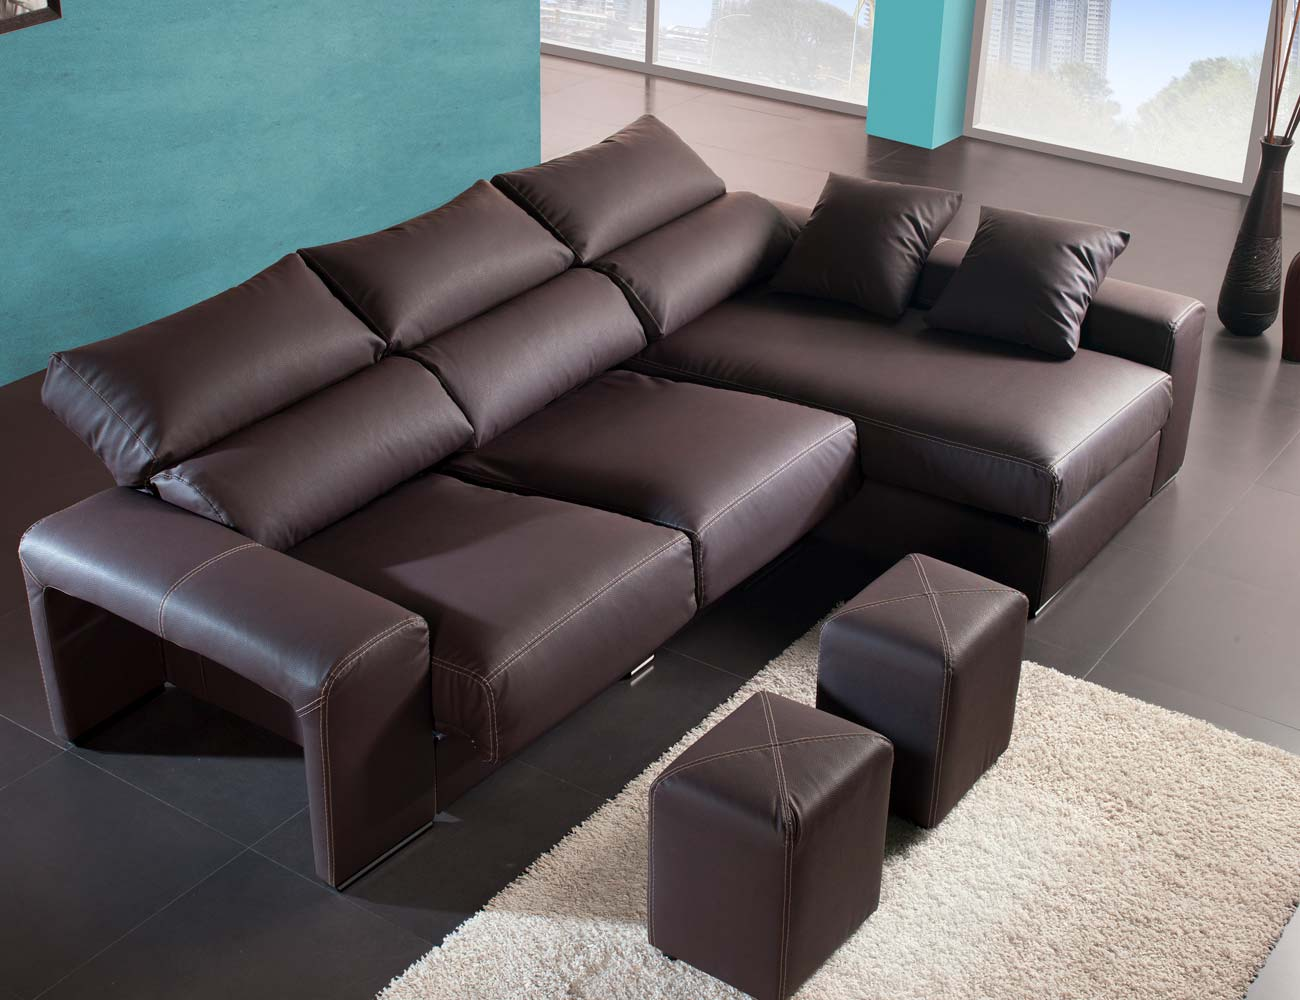 Sofa chaiselongue moderno polipiel chocolate poufs taburetes3